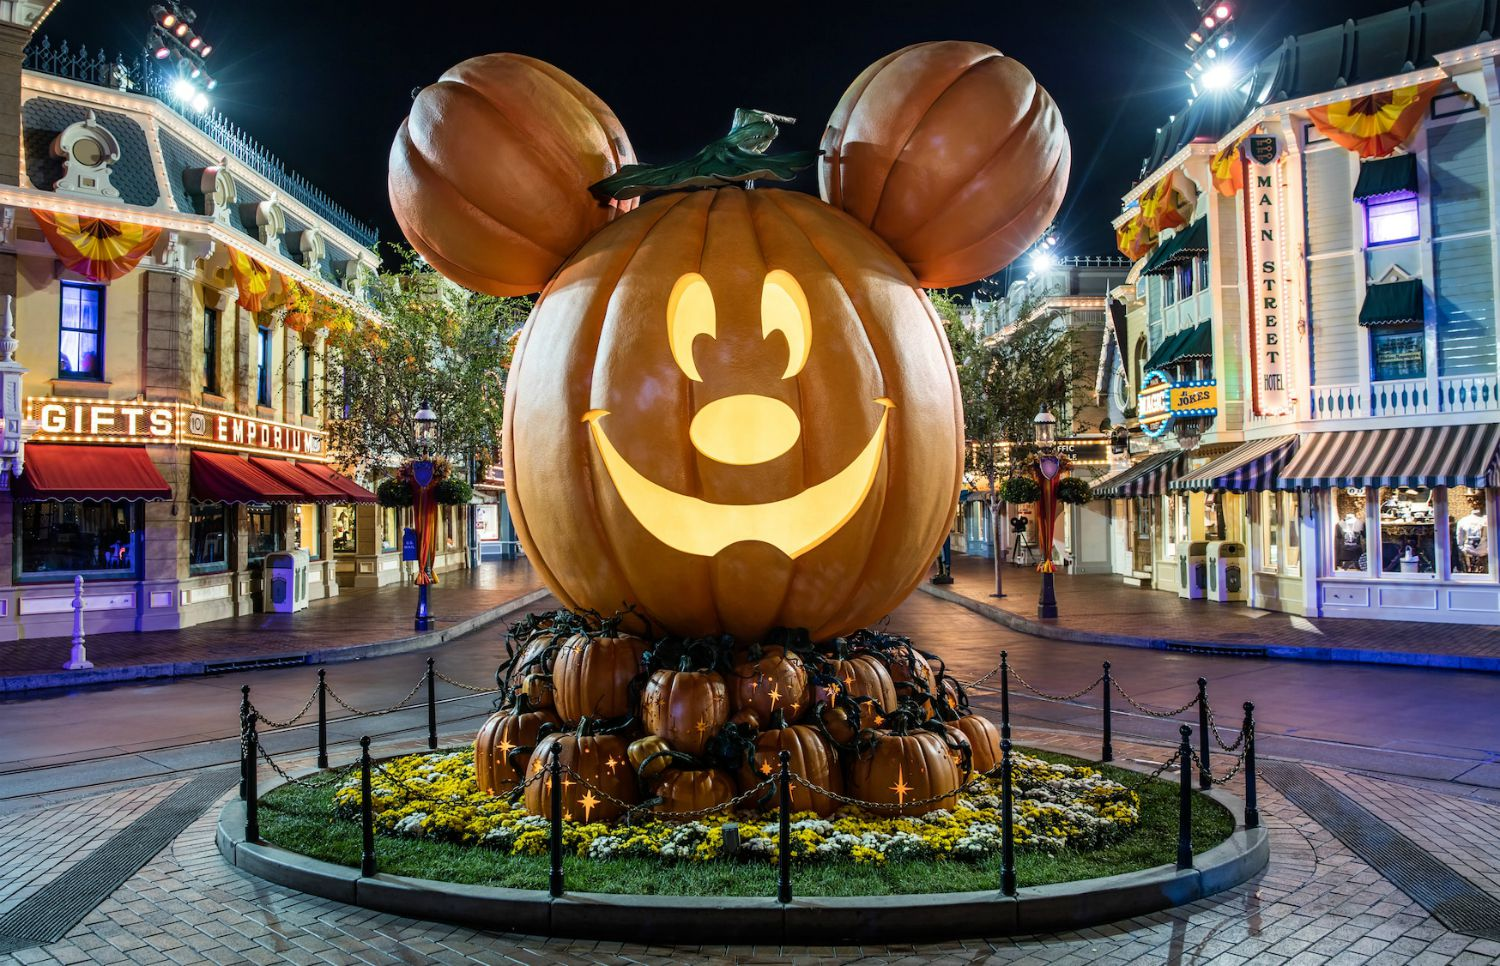 Halloween 2020 Socal Disneyland Halloween Is Canceled Along with Other Theme Park Events